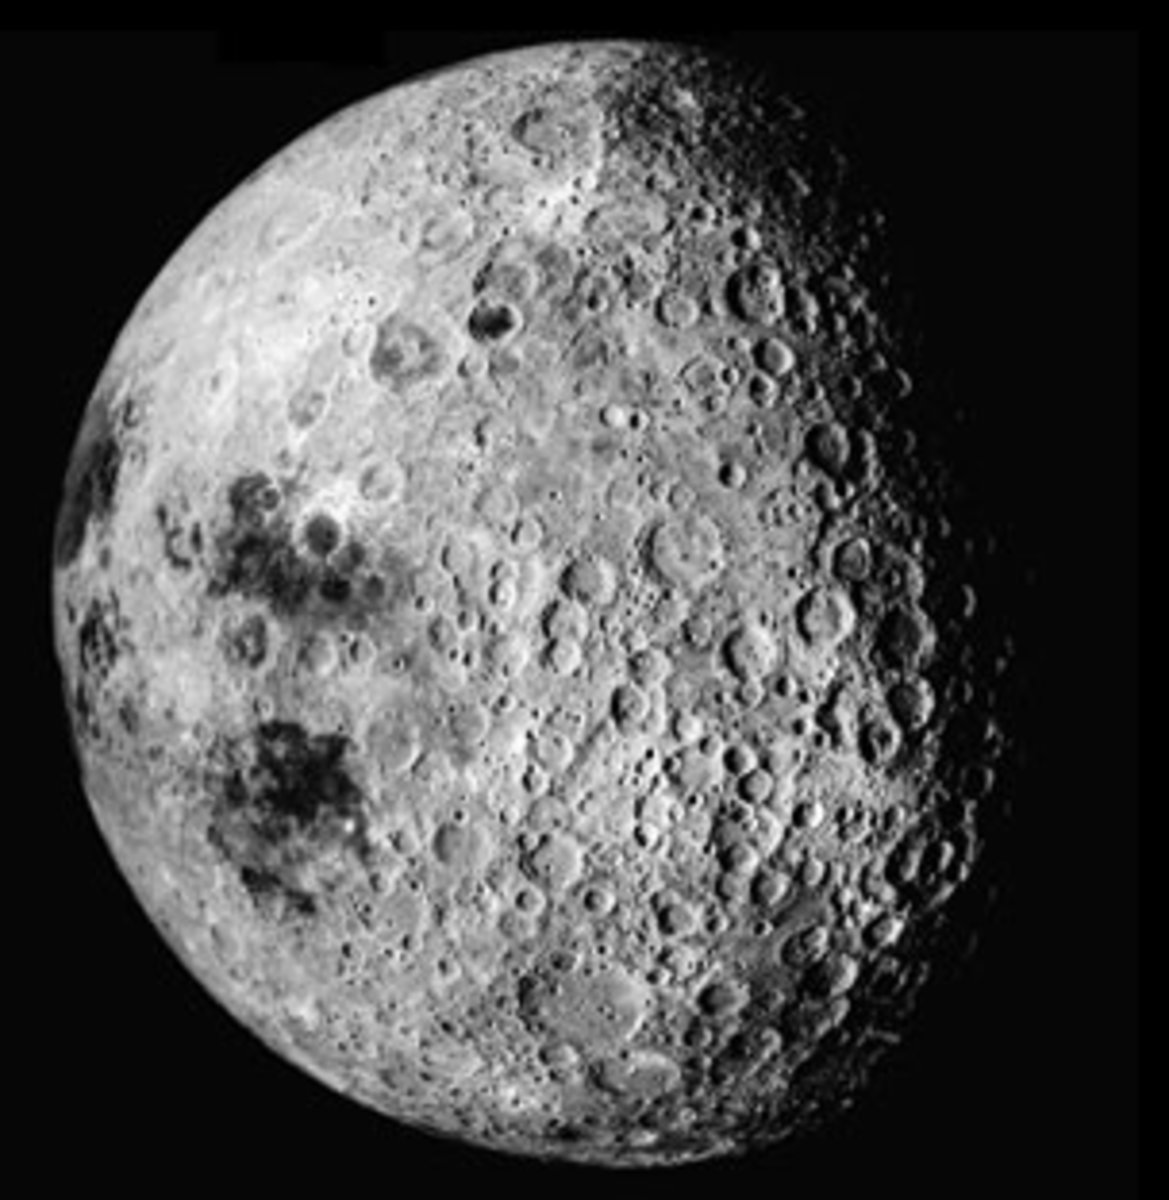 Notice how the left half of the moon in this image is perfectly semi-circular whereas the right half looks oddly shaped as though it has been airbrushed.